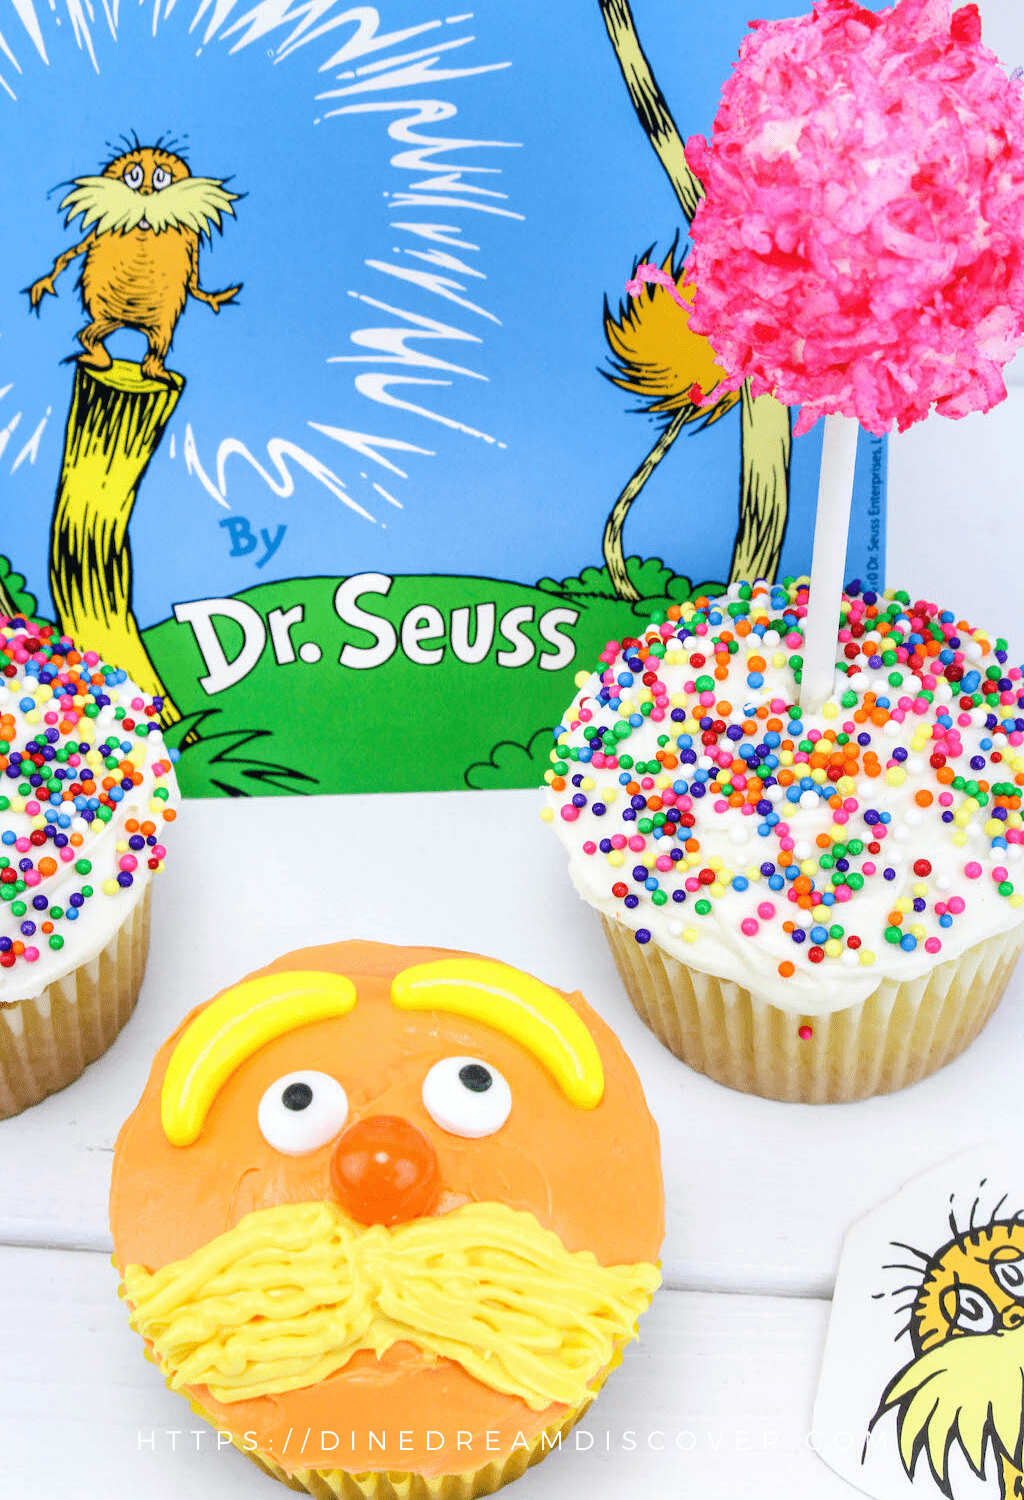 35 DR. SEUSS RECIPES AND CRAFTS ROUNDUP